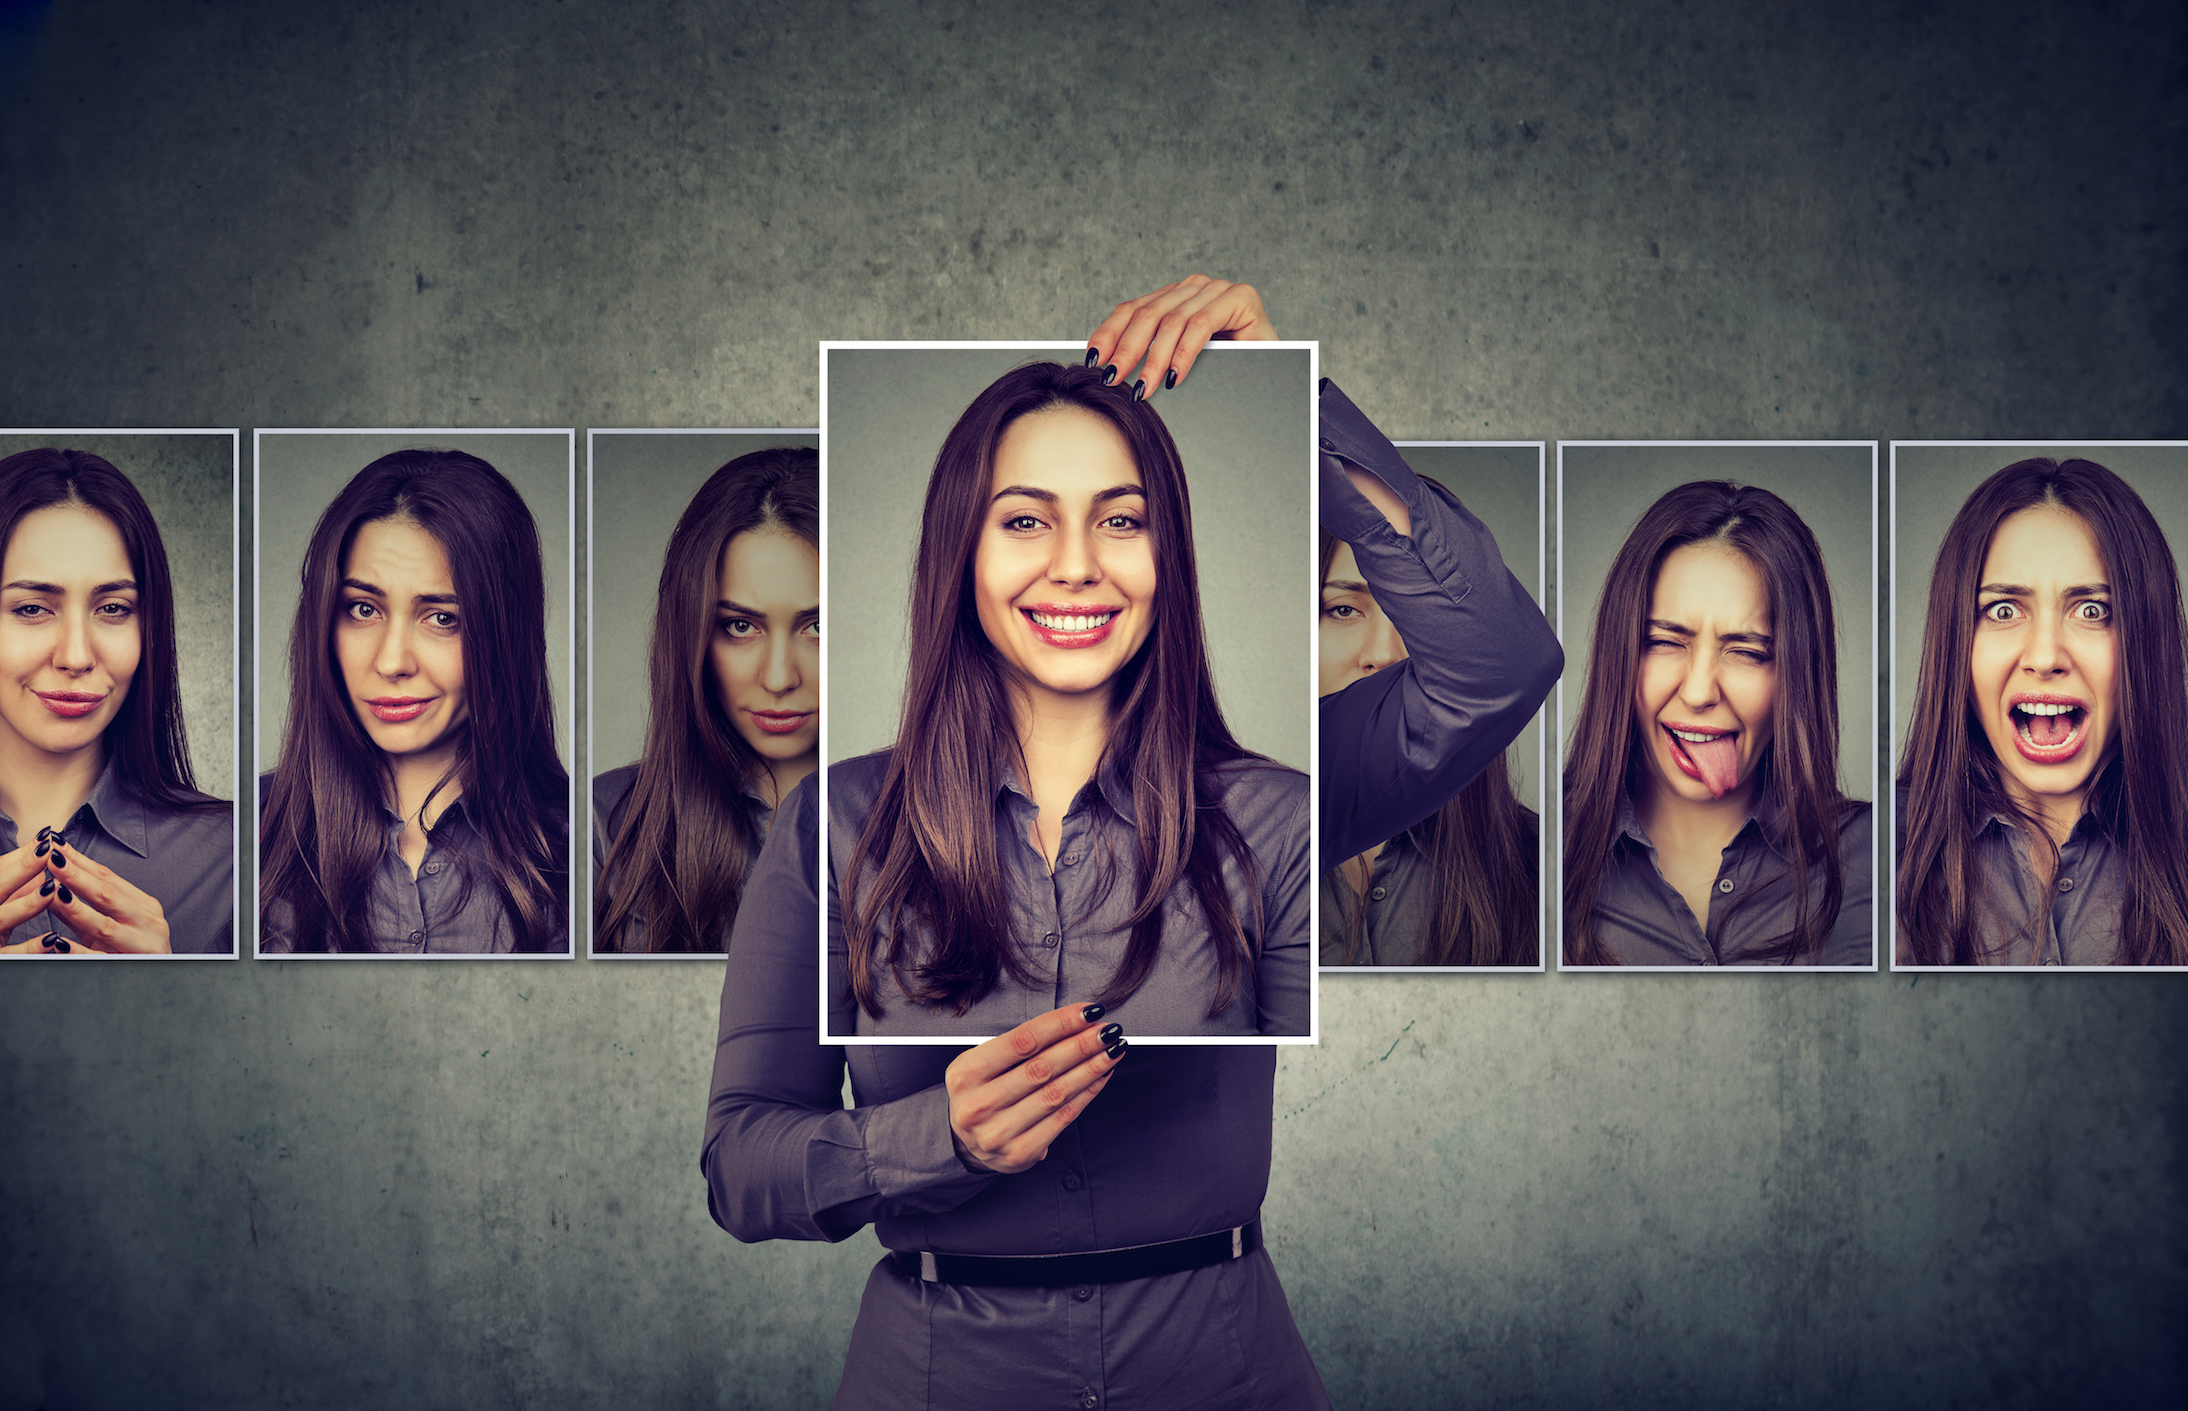 What determines how we develop our personalities? A new theory suggests that personality is based on basic needs and fulfillment.